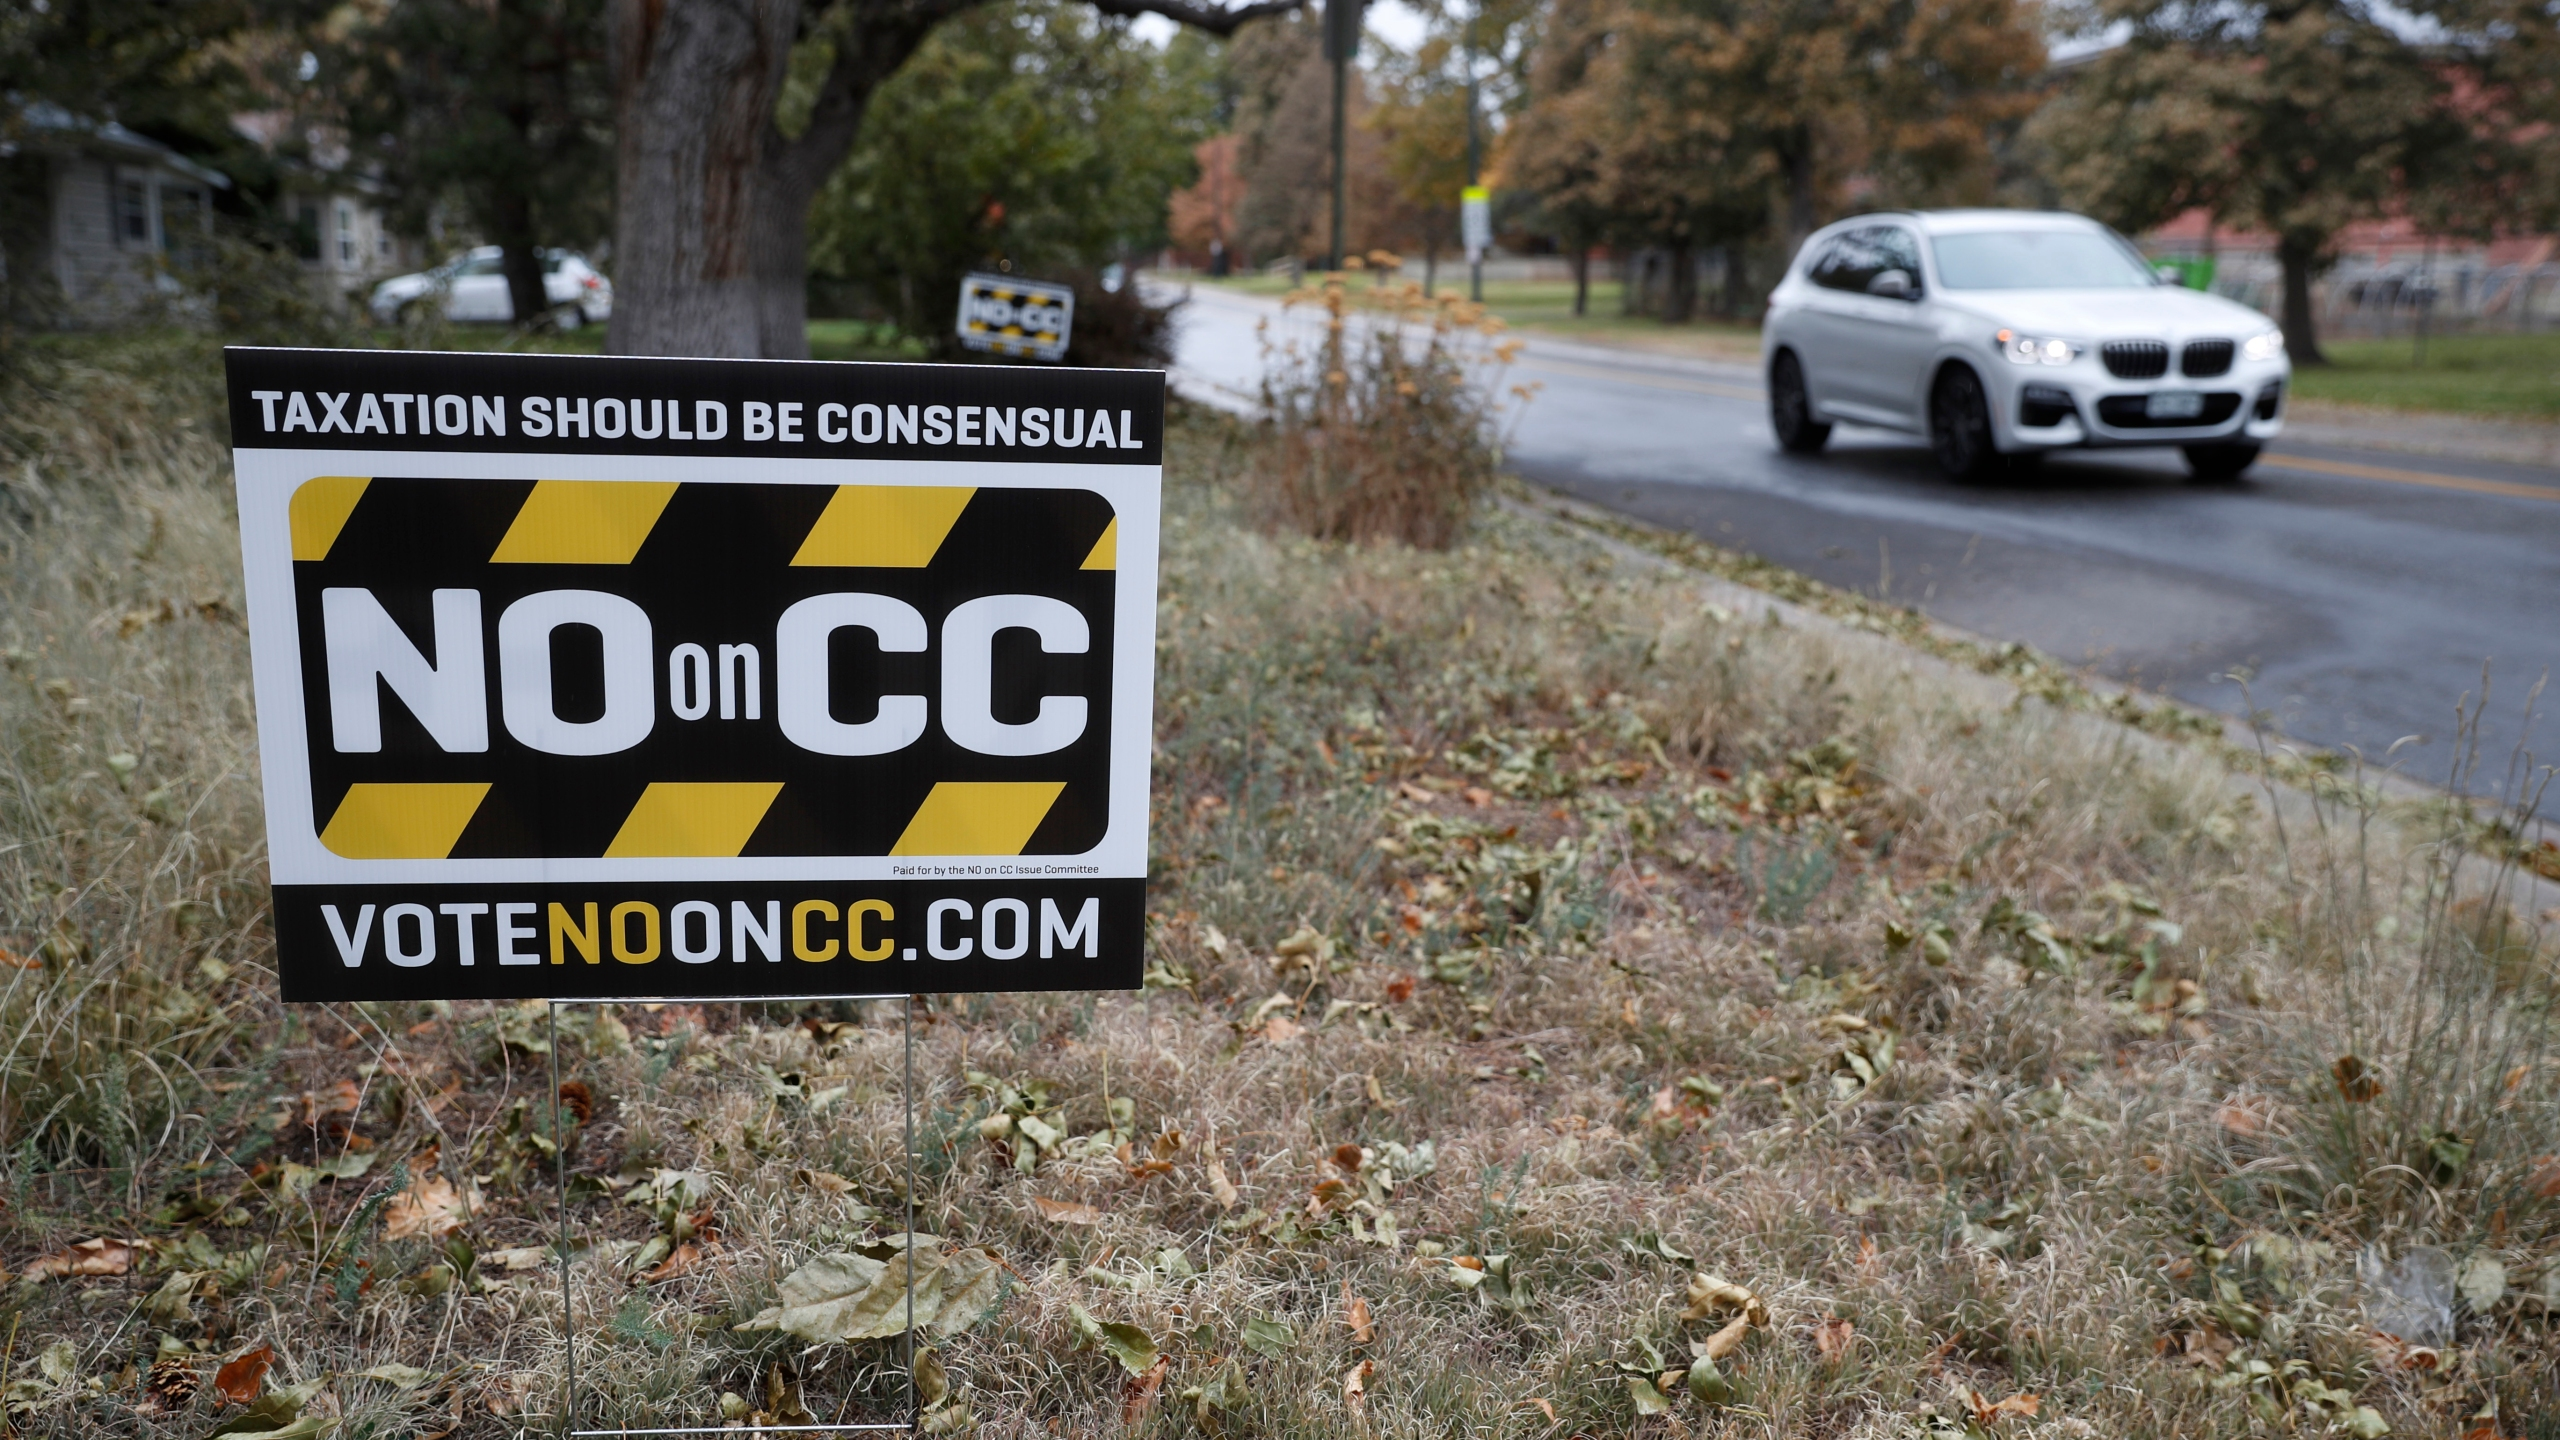 In this Friday, Oct. 18, 2019, photograph, a vehicle passes by a lawn sign calling for voters to cast ballots against a measure to dismantle part of Colorado's state tax laws on election day Tuesday, Nov. 5. (AP Photo/David Zalubowski)